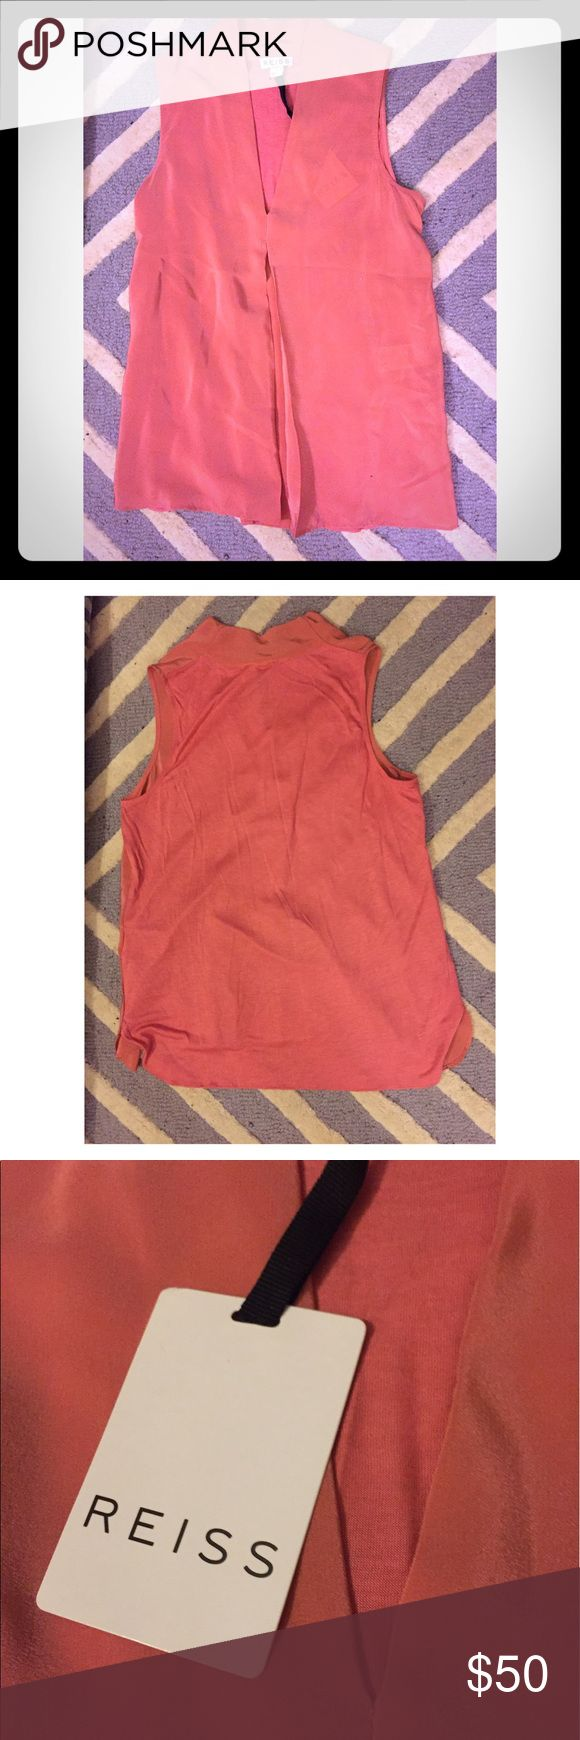 NWT Reiss Silk Blouse Coral/light pink vneck blouse. The front is 100% silk and the back 100% viscose. Size small but would also fit x-small. Reiss Tops Blouses